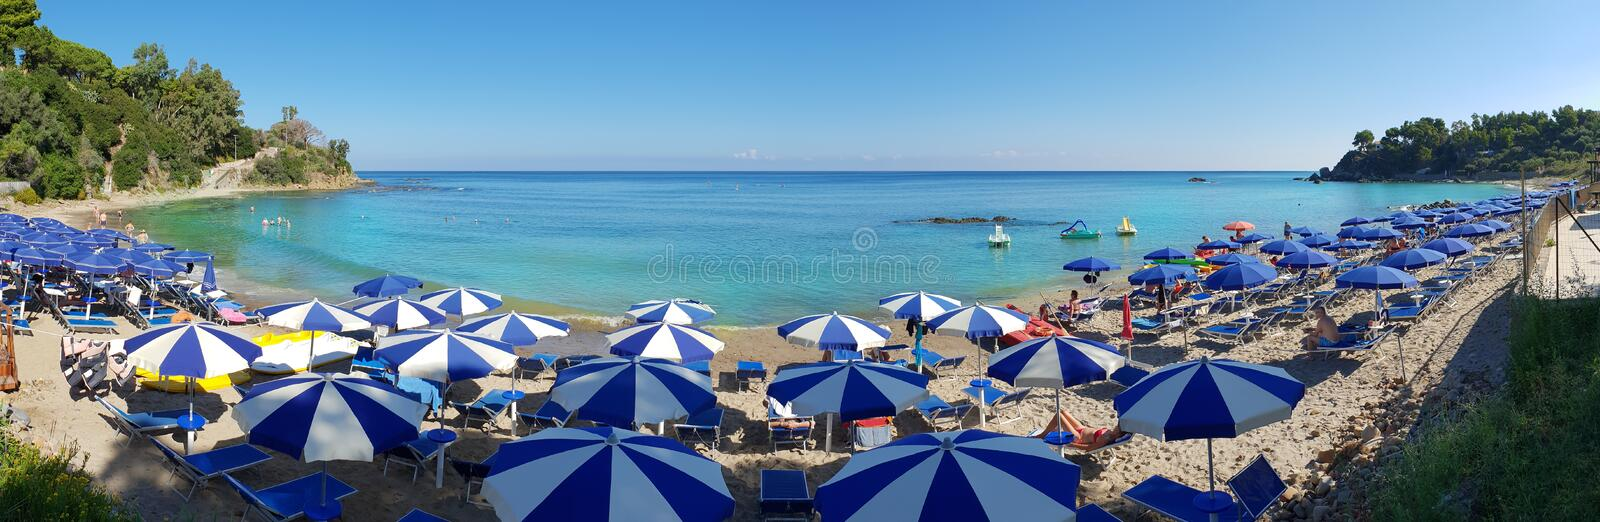 Cefalu beach in Sicily. Sicily, Italy - August 10, 2018: Panoramic view of a beach in Cefalu region, in summertime, Sicily island stock photography